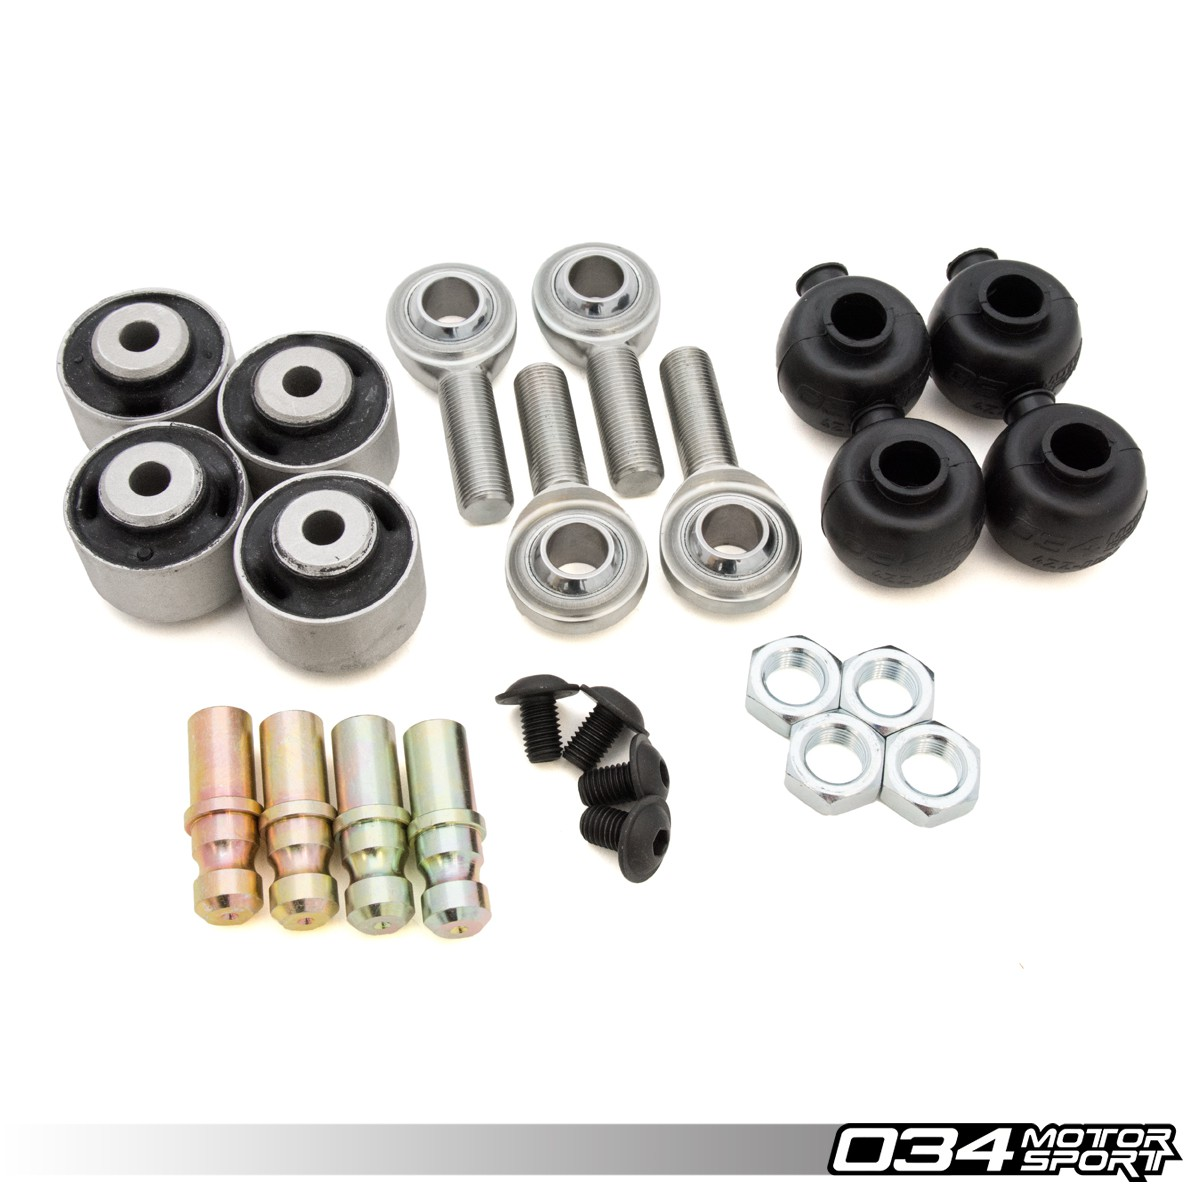 Rebuild Kit, Density Line Adjustable Front Upper Control Arms for B5/B6/B7 | 034-401-Z000